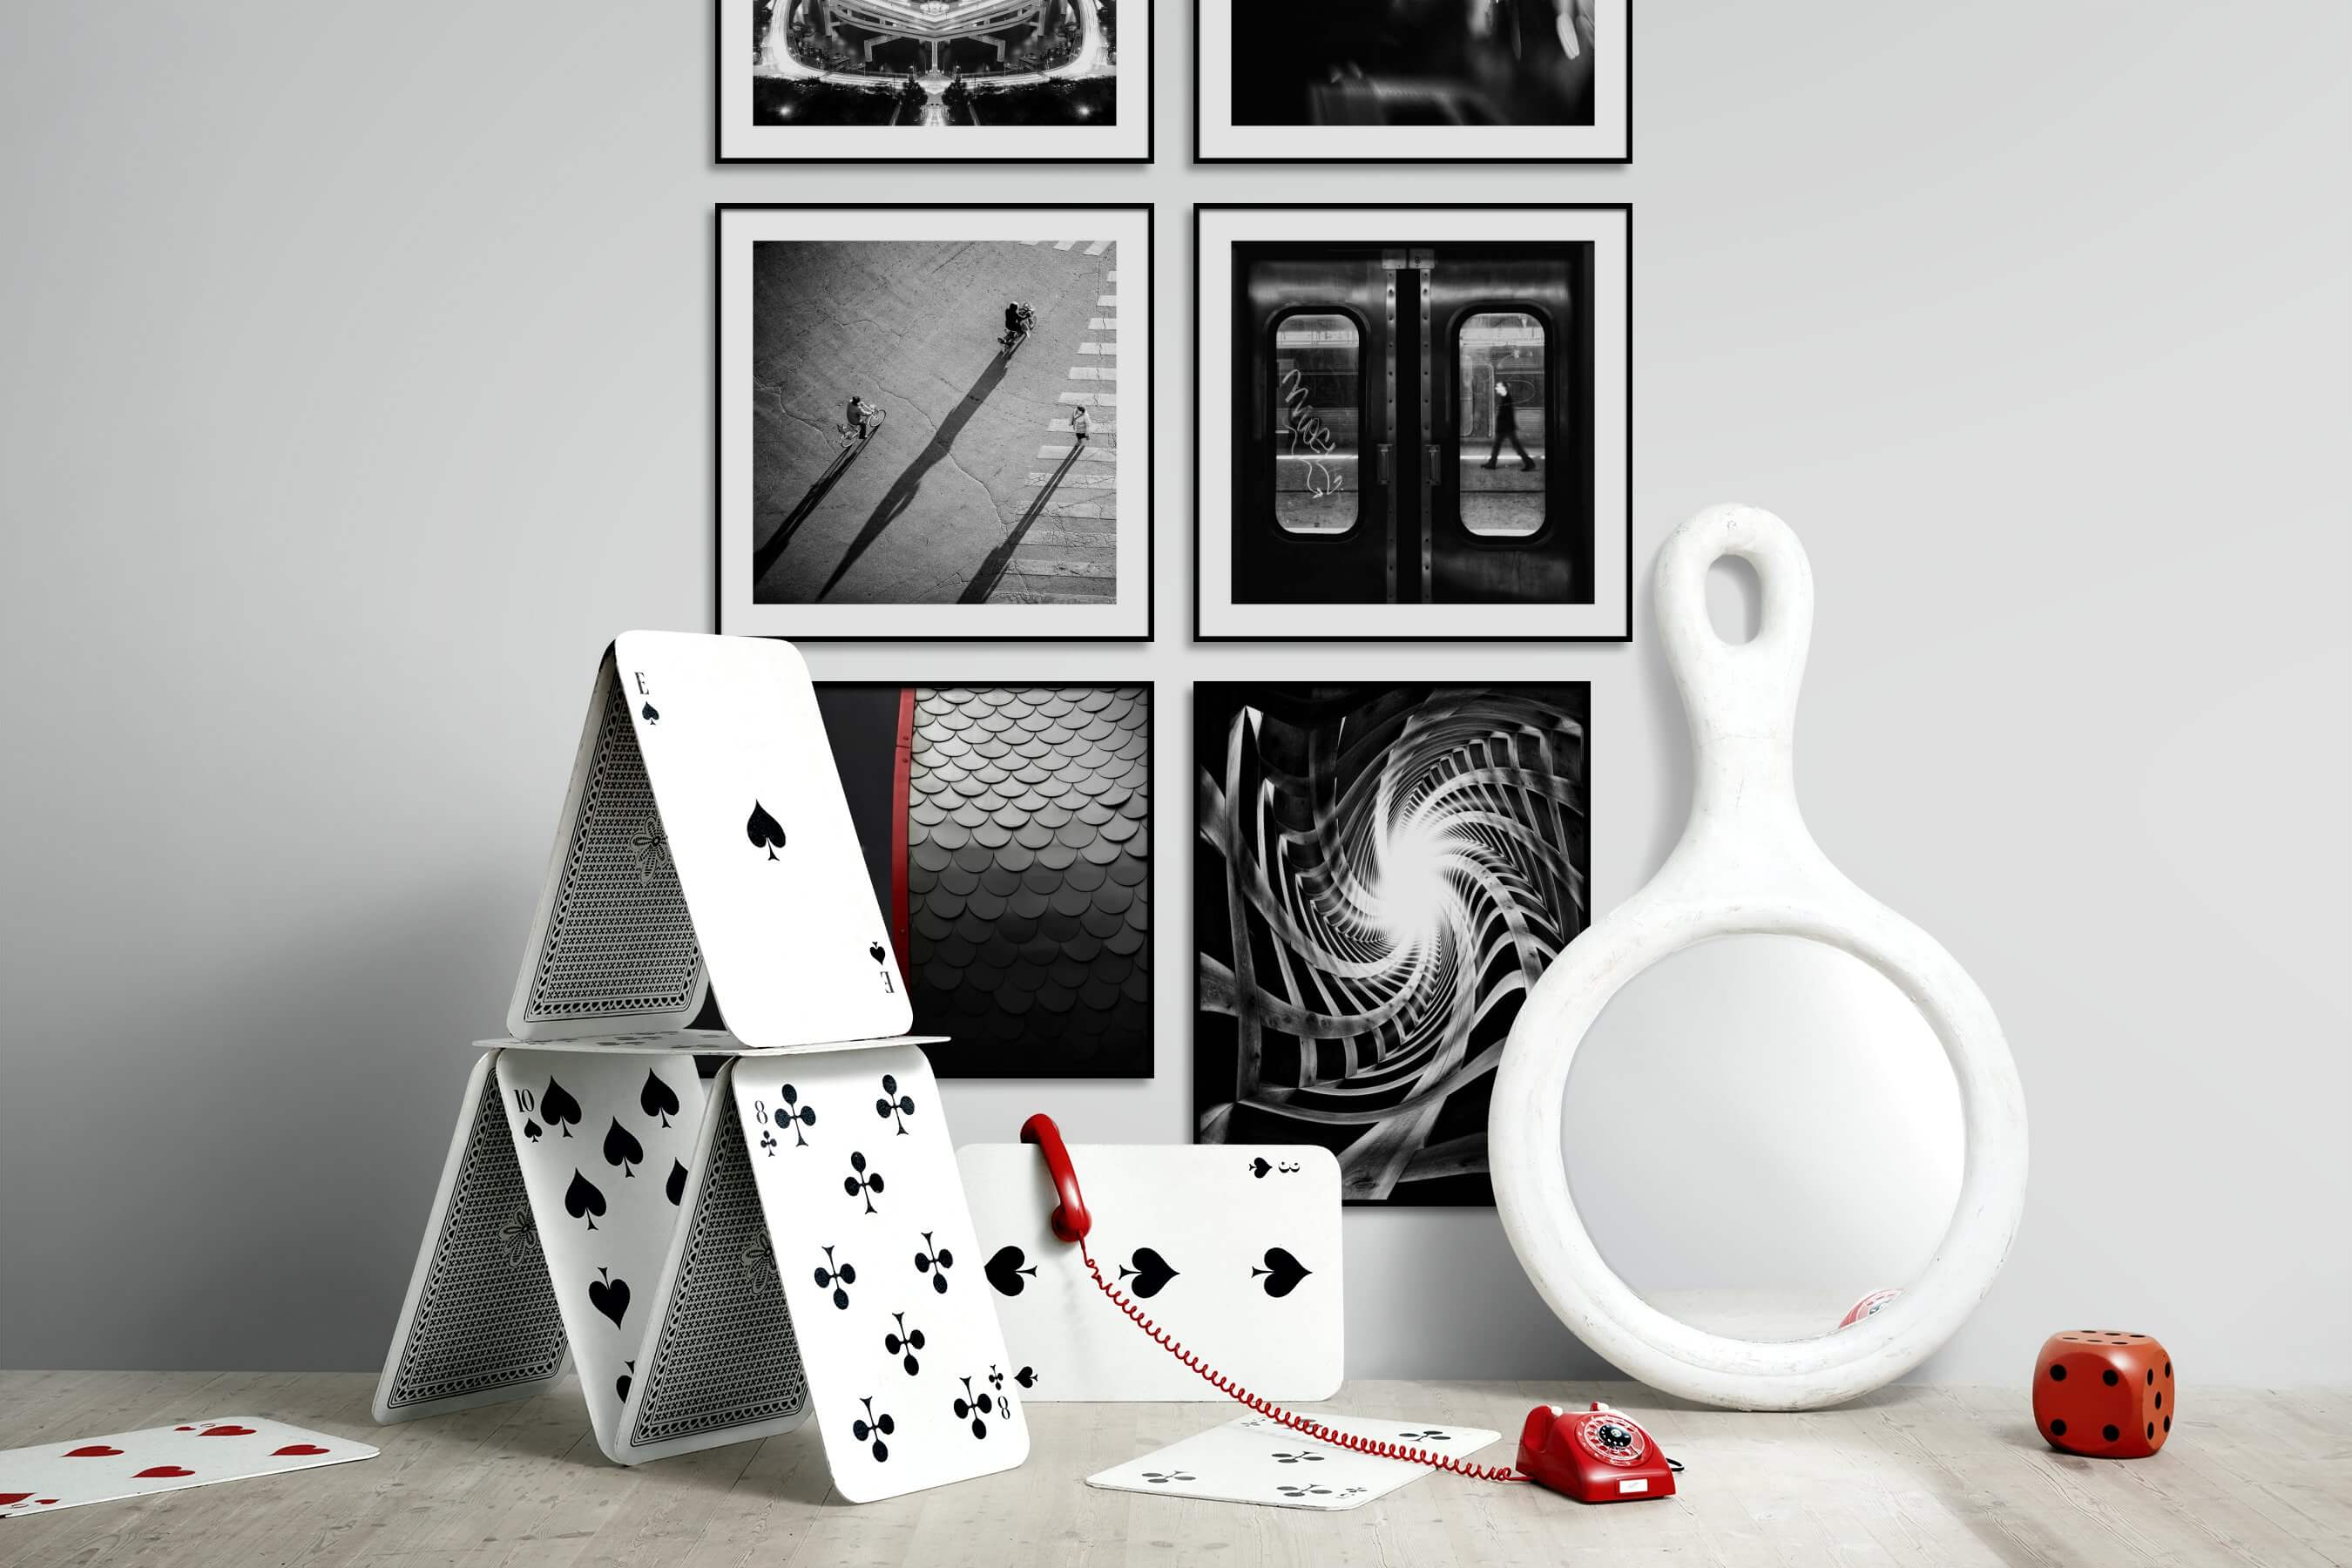 Gallery wall idea with six framed pictures arranged on a wall depicting Black & White, For the Maximalist, City Life, Vintage, For the Minimalist, and For the Moderate